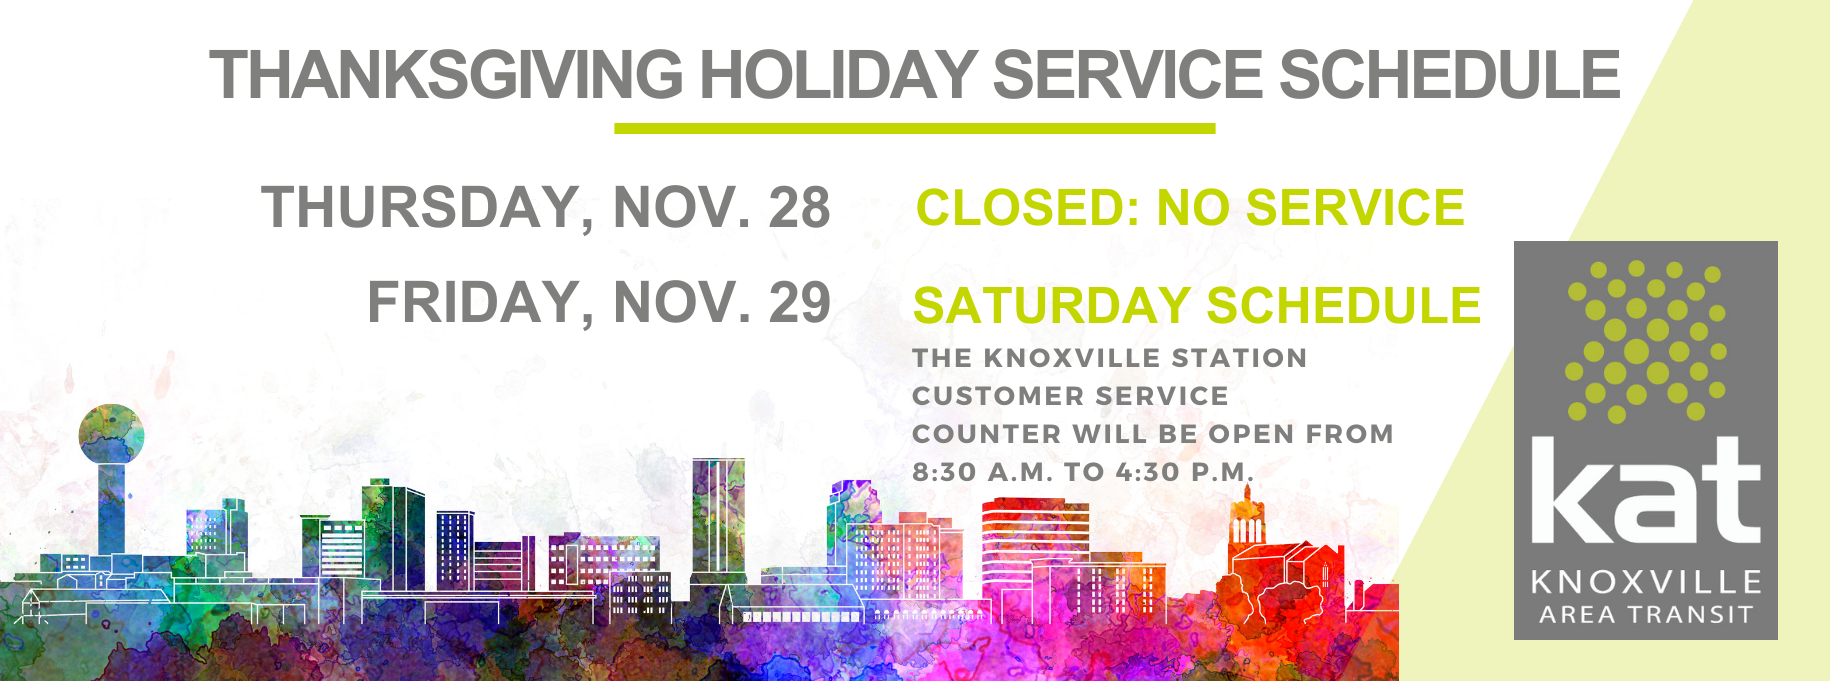 2019 Thanksgiving Holiday Schedule